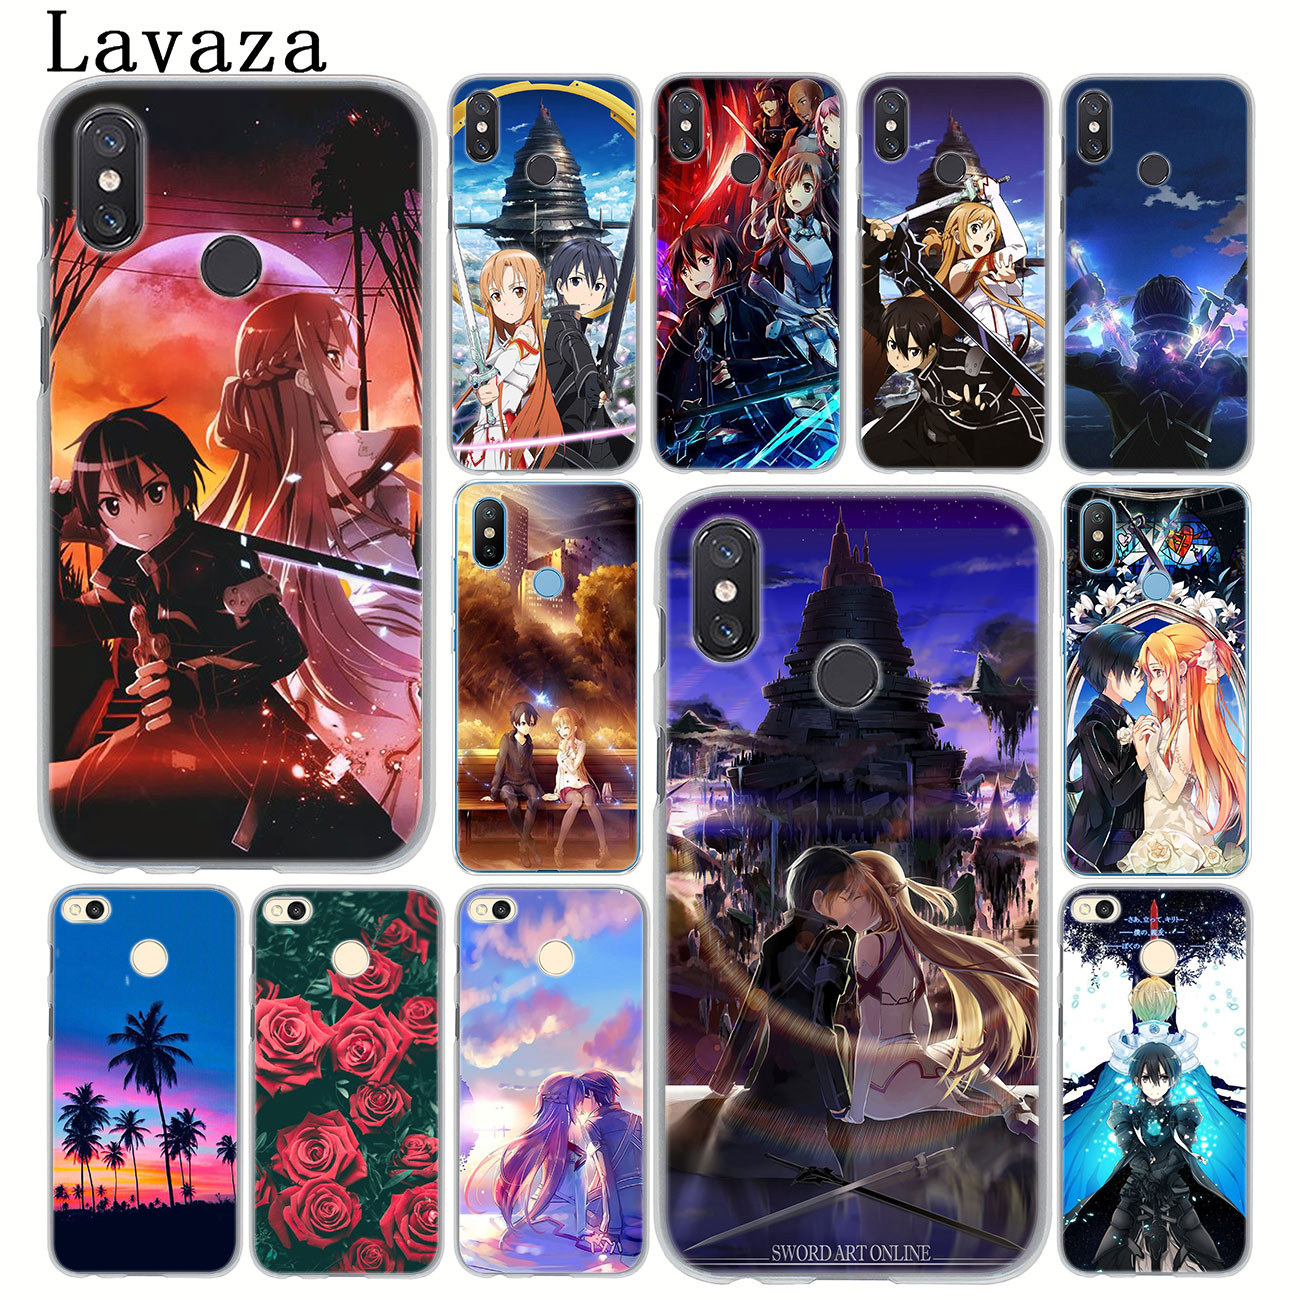 Cartoon Sword Art Online <font><b>Anime</b></font> Phone <font><b>Case</b></font> for <font><b>Xiaomi</b></font> <font><b>MI</b></font> 10 9 9T CC9 CC9E A3 Pro 8 SE A2 Lite A1 pocophone f1 6 Mi10 image